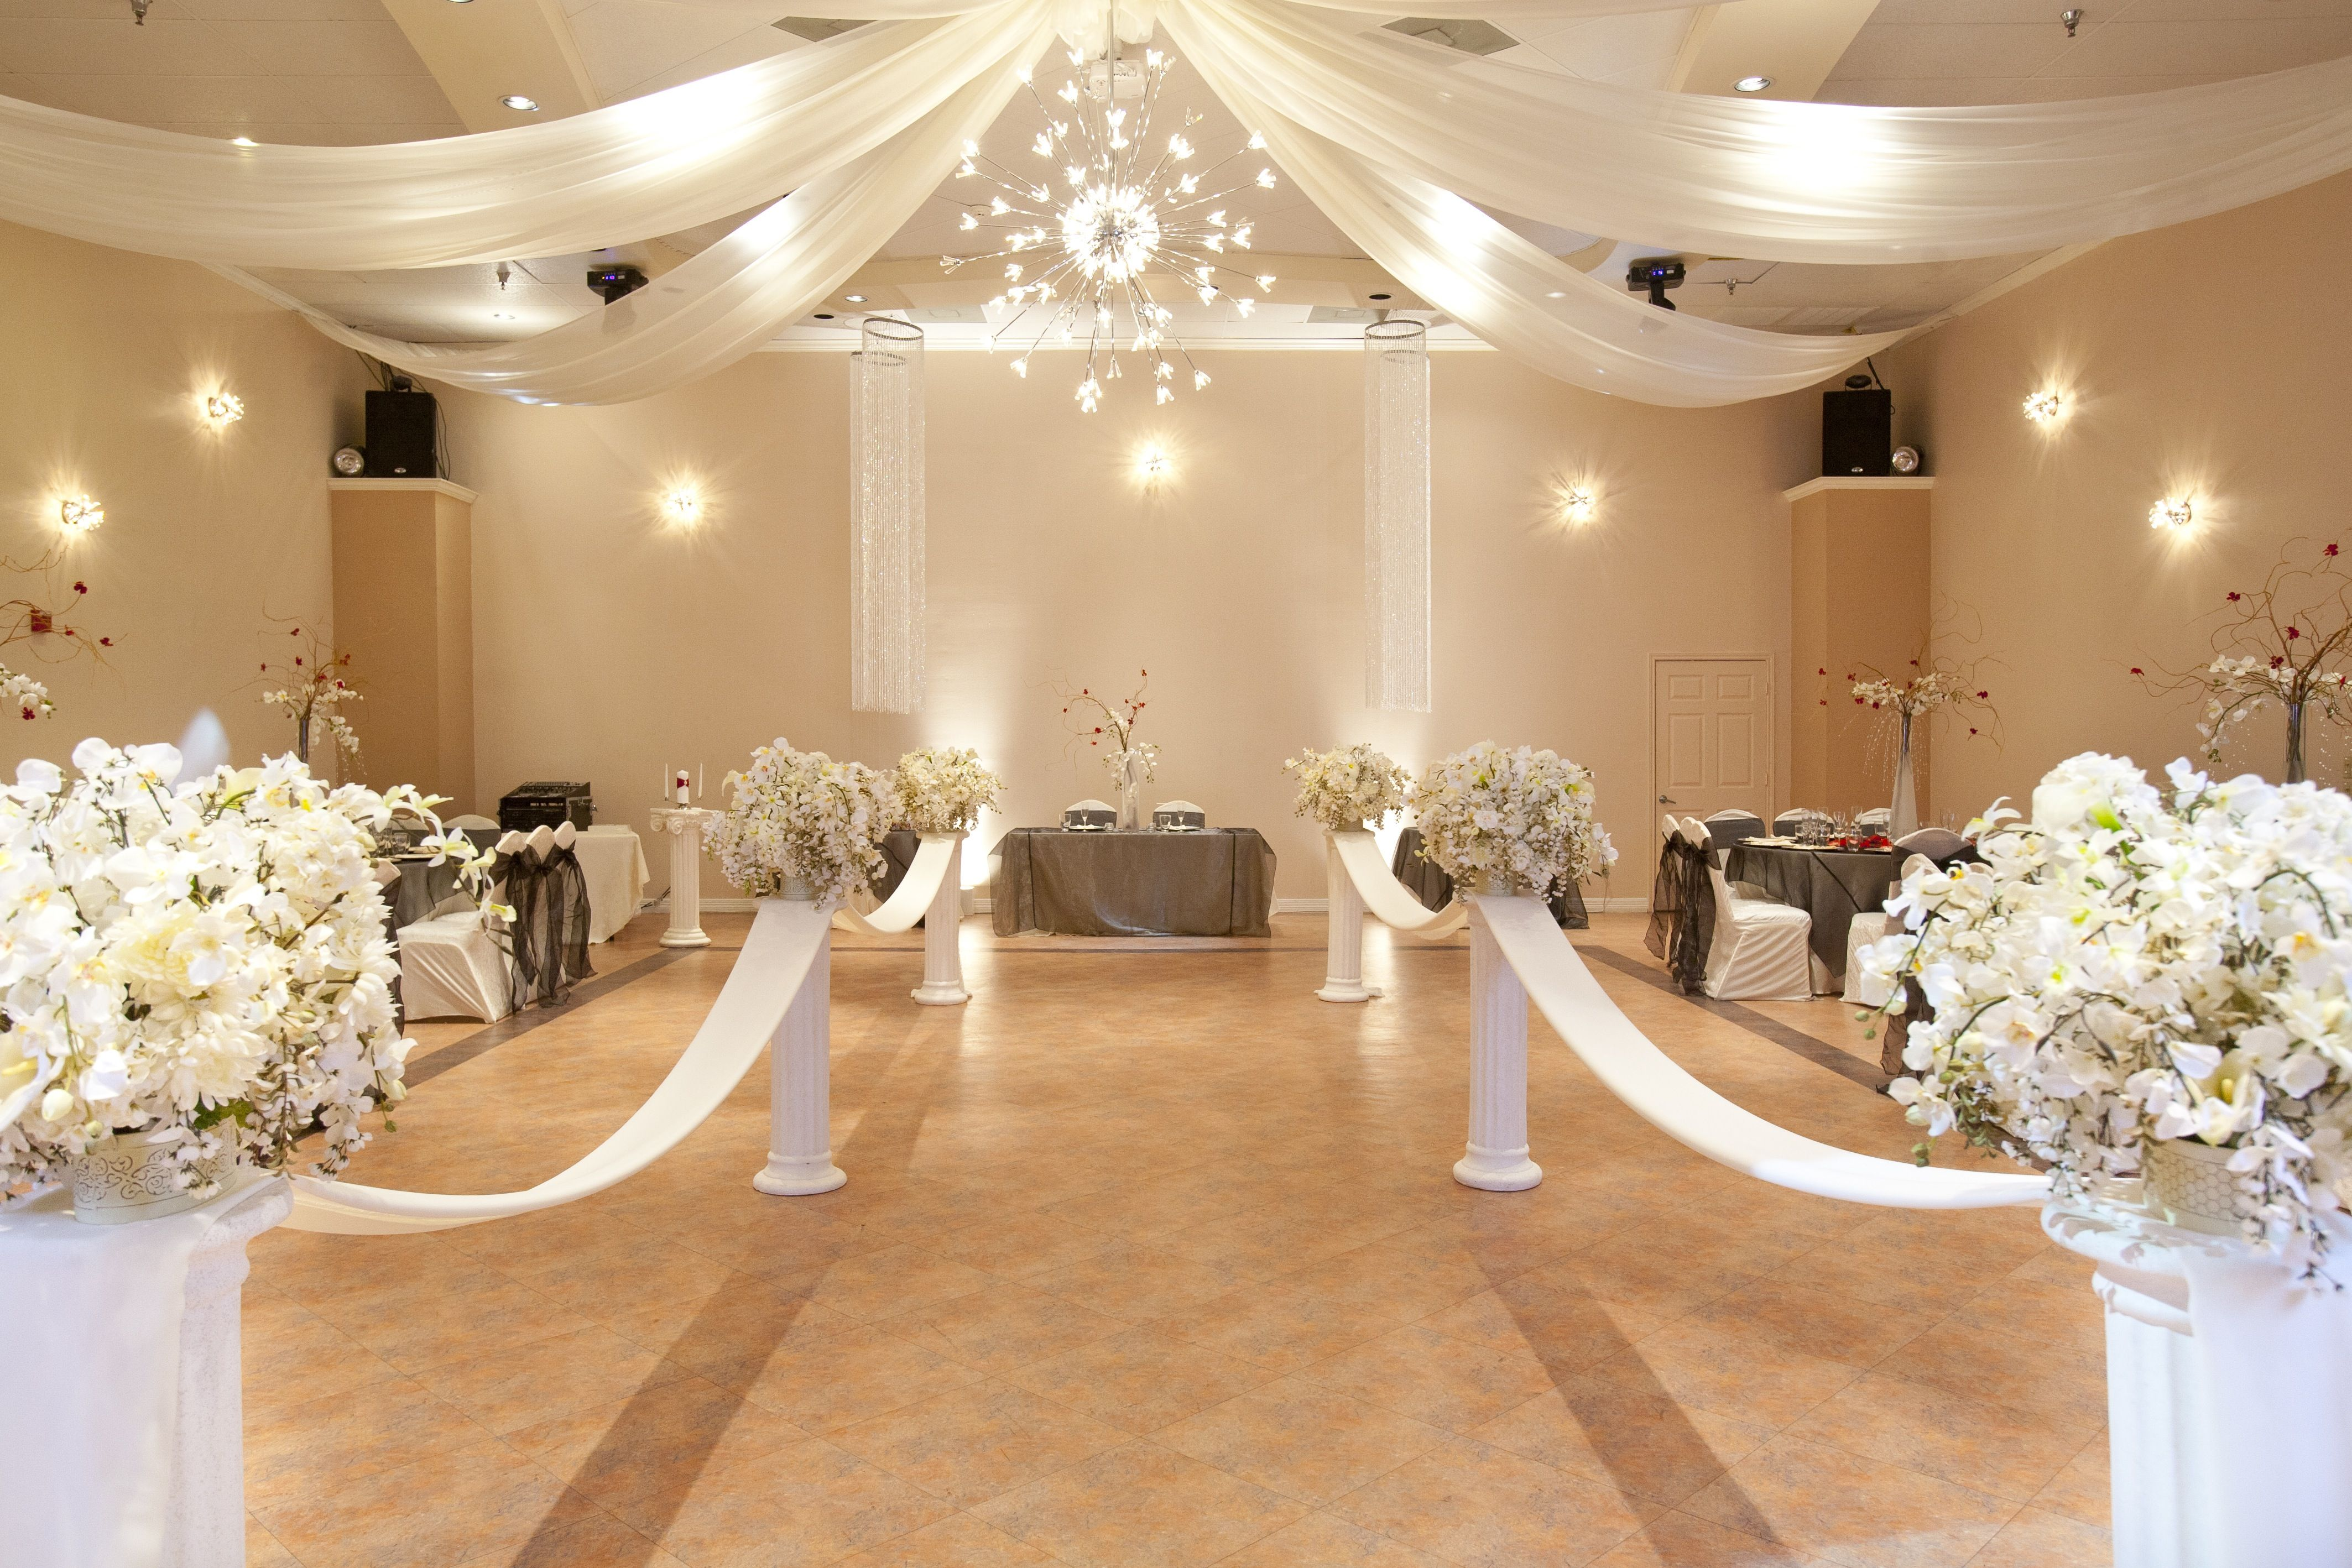 Wedding hall decor committed anniversary wedding for Wedding banquet decorations